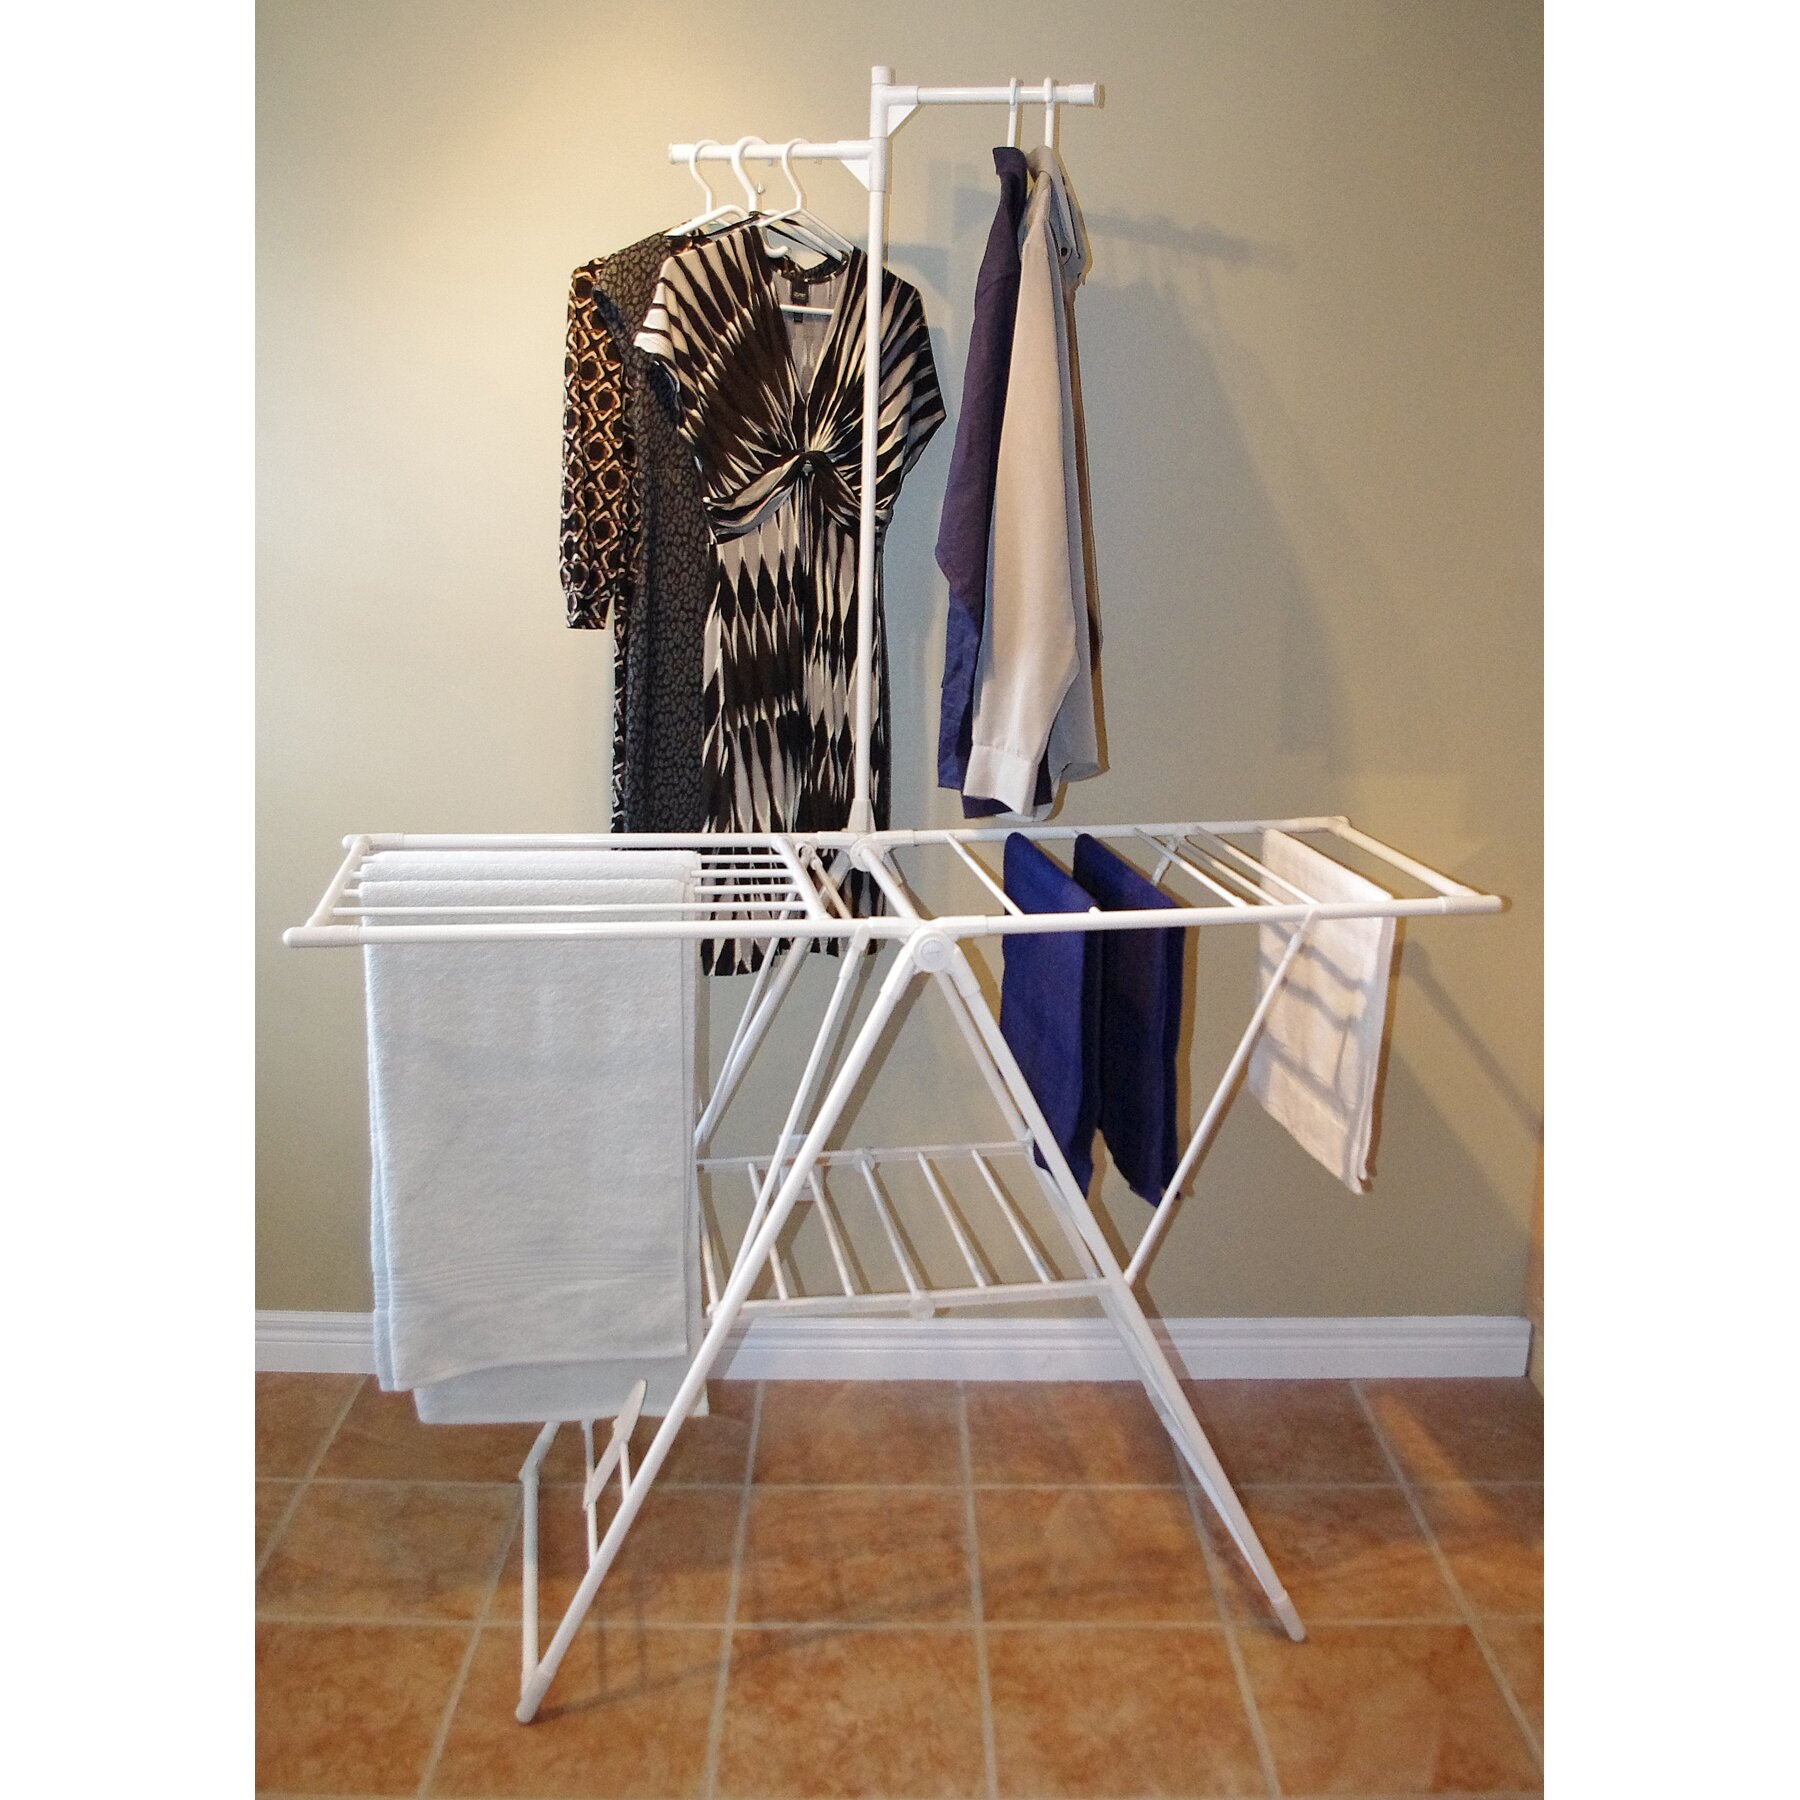 greenway drying rack with clothes hanger bar reviews wayfair. Black Bedroom Furniture Sets. Home Design Ideas